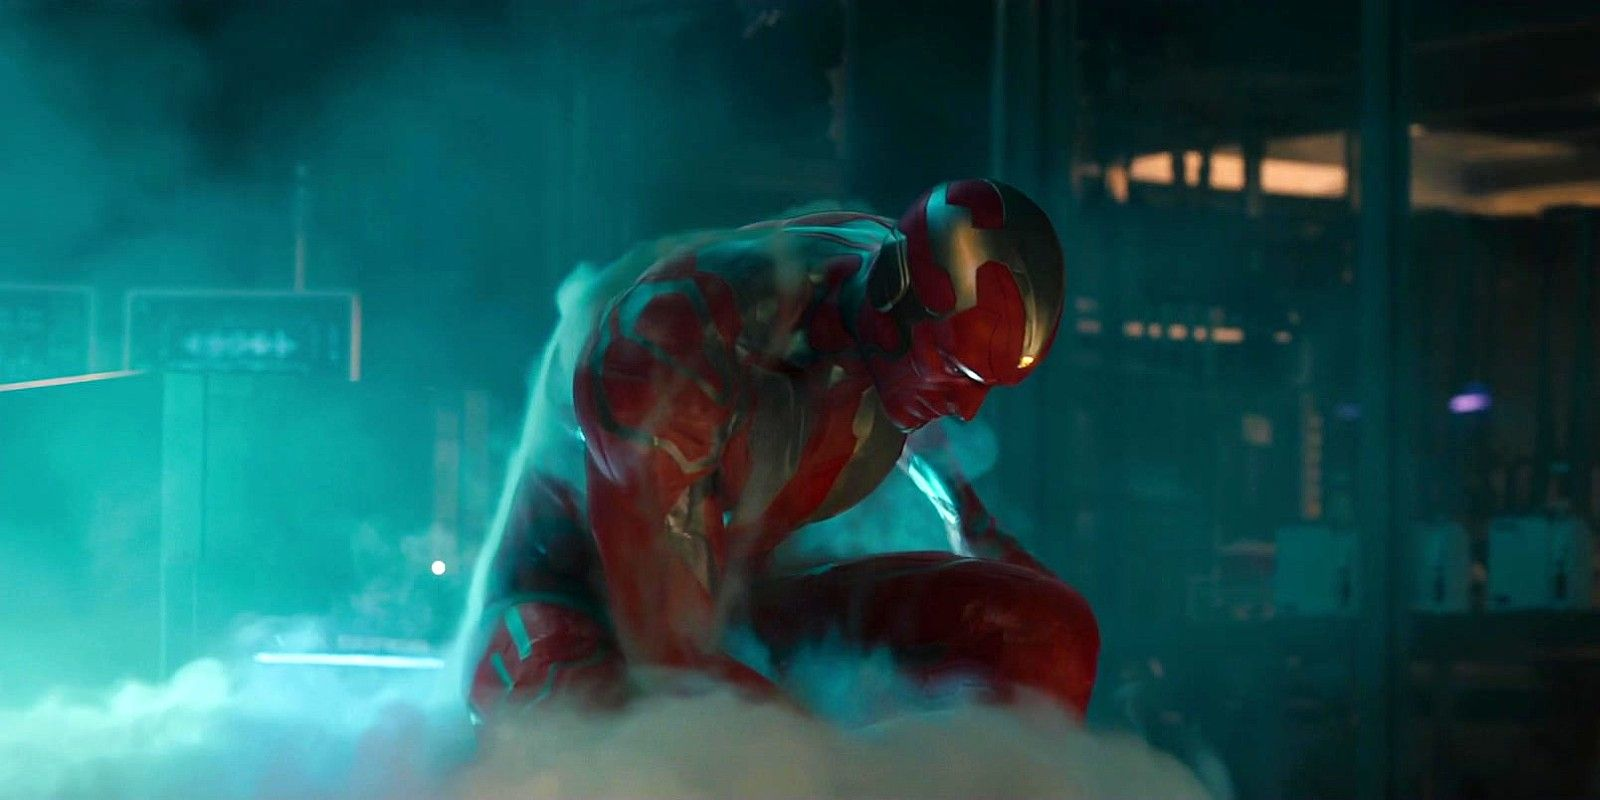 Vision Almost Had Genitalia In Avengers: Age of Ultron, Says Bettany